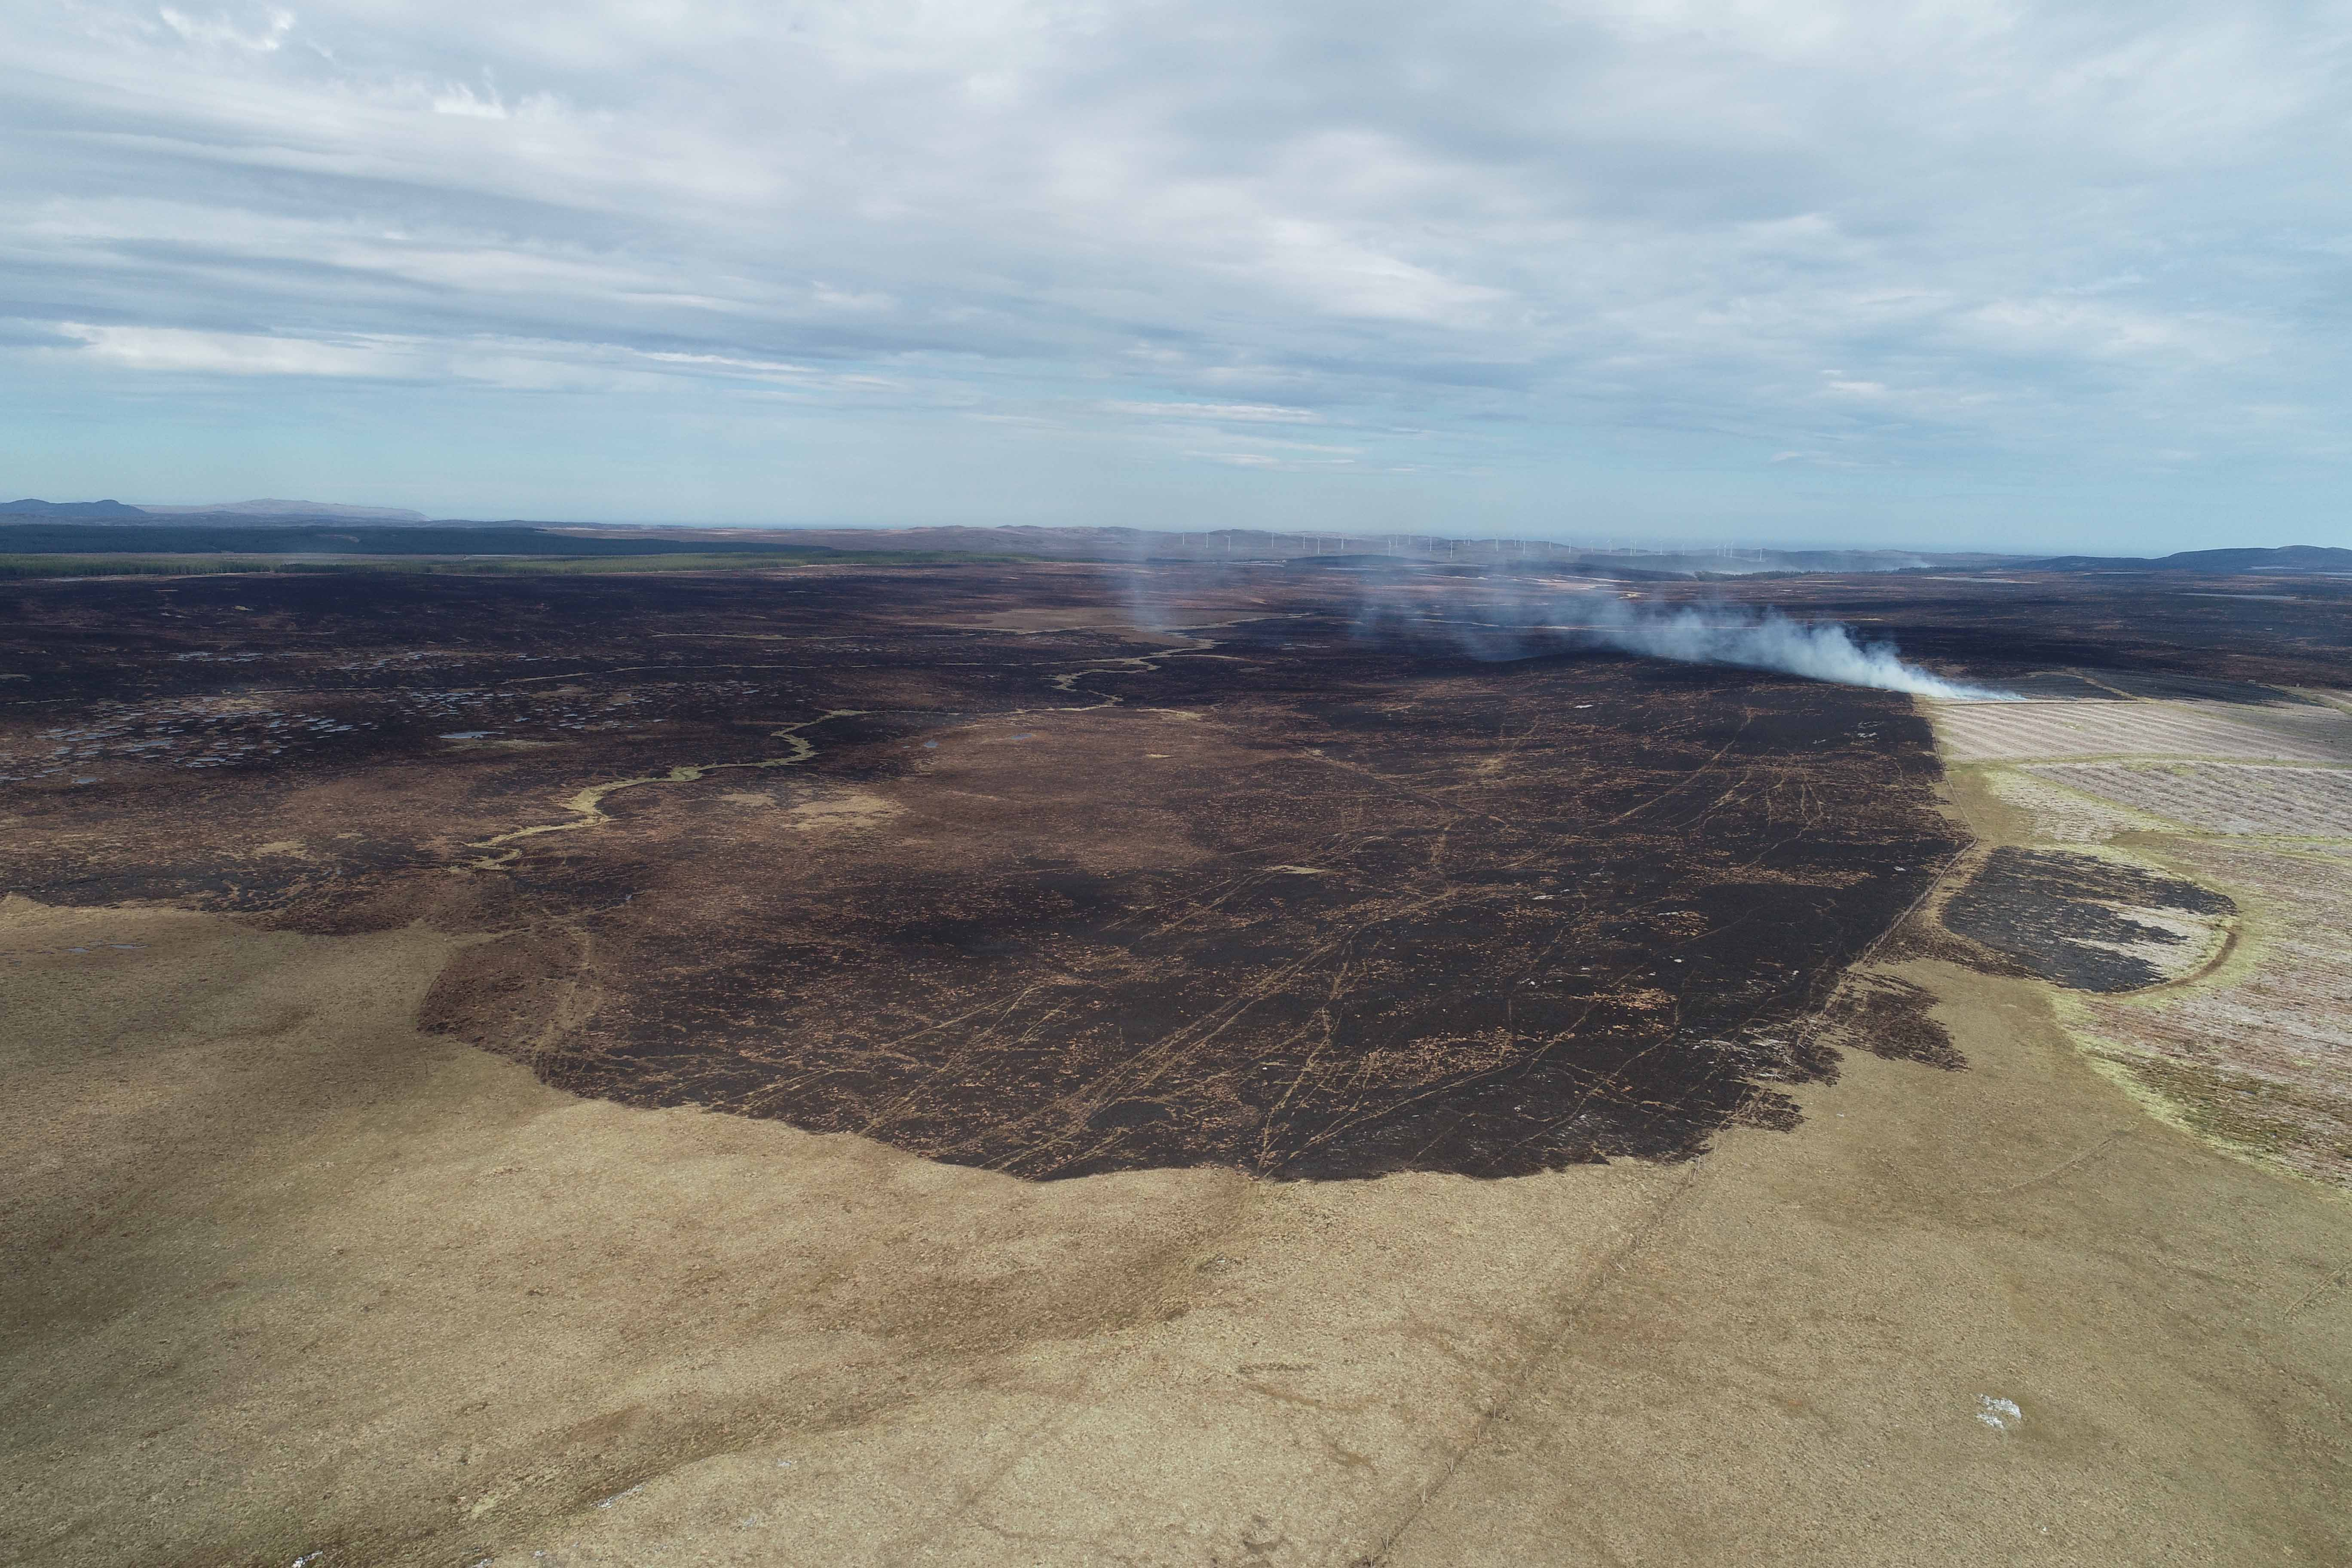 Peatland wildfire damage near Strathy. Credit Paul Turner.